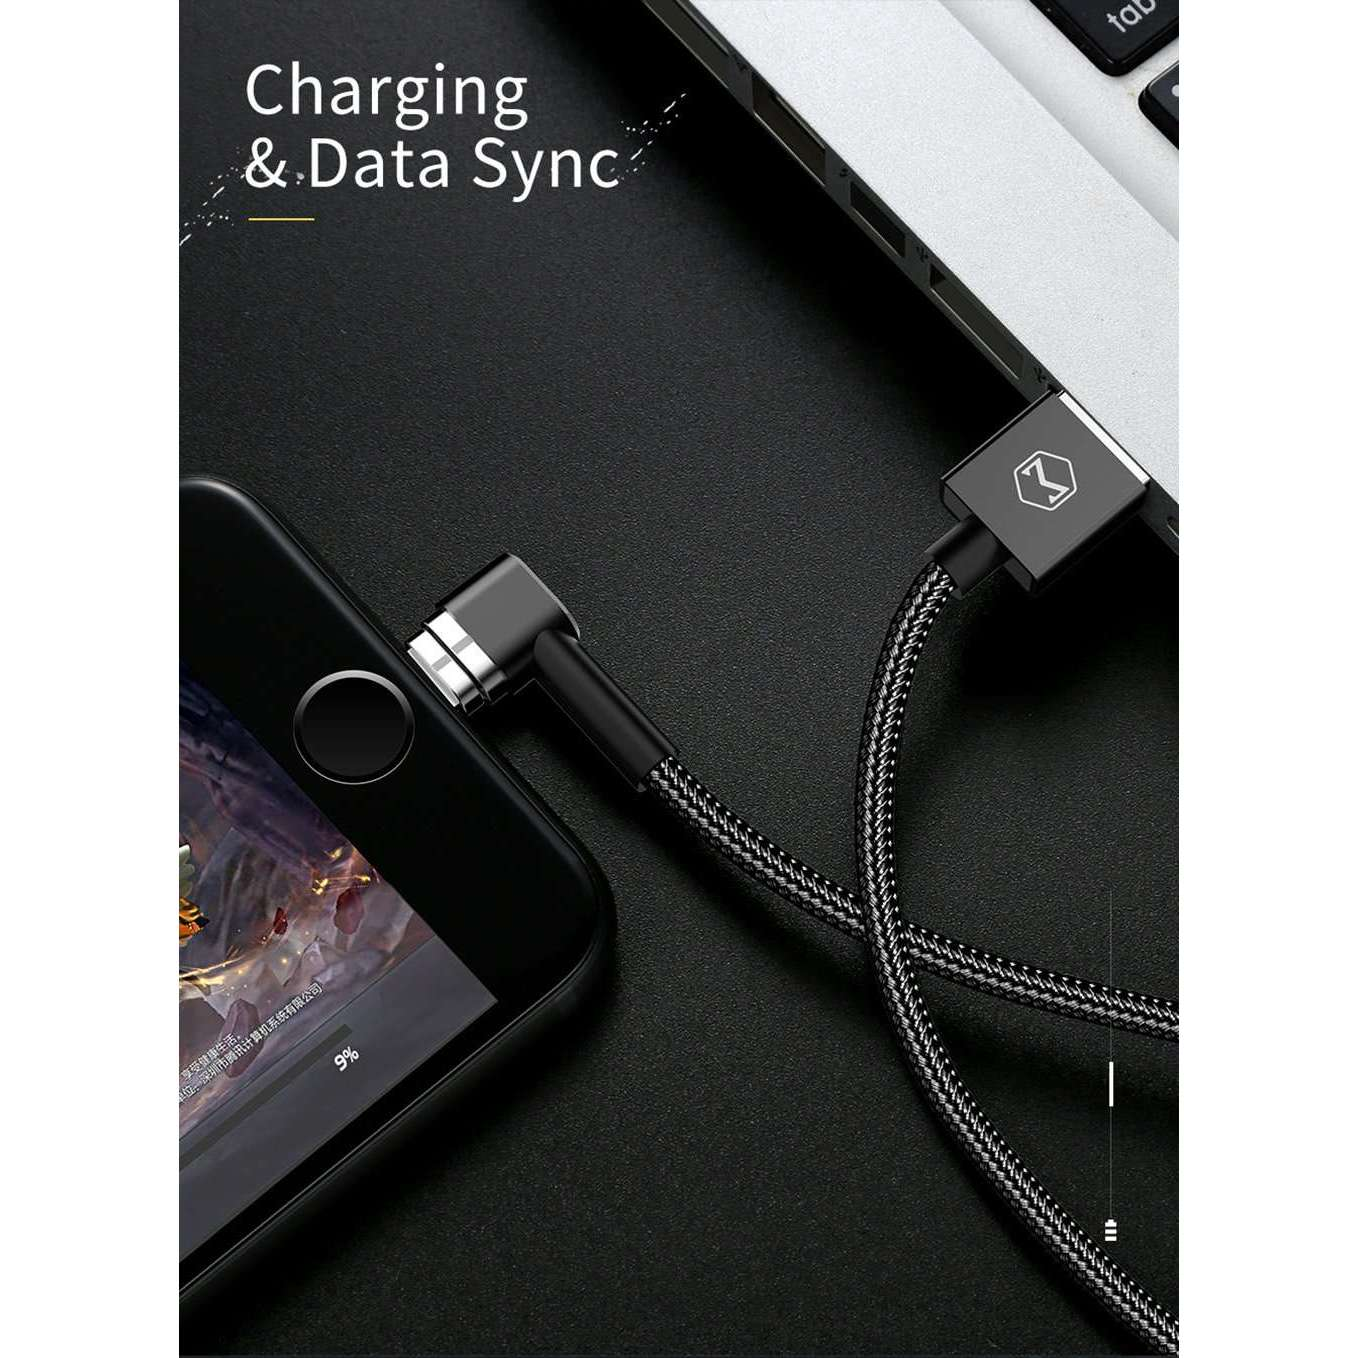 Mcdodo Magnetic Cable 90degree 3 In 1 Lightning